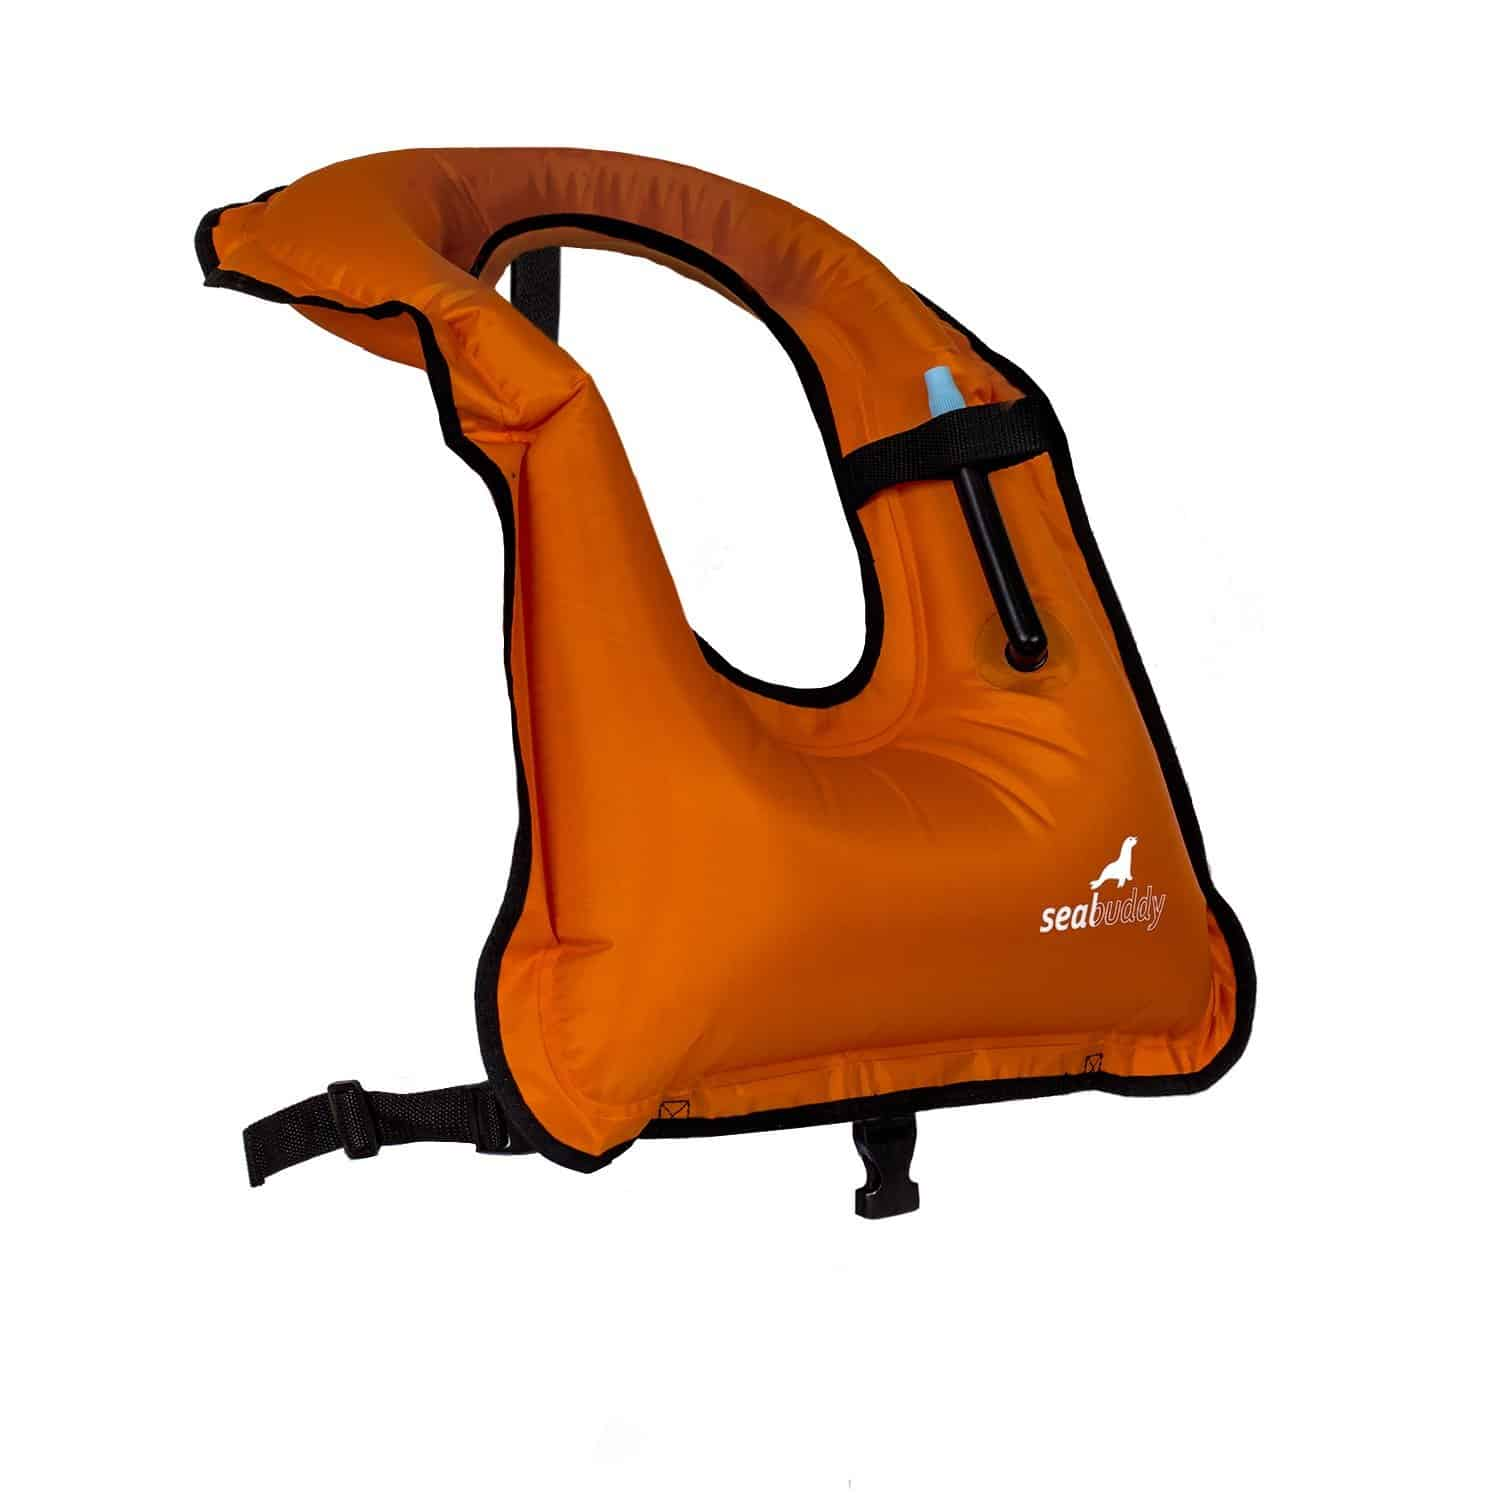 SealBuddy Inflatable Snorkel Vest Orange